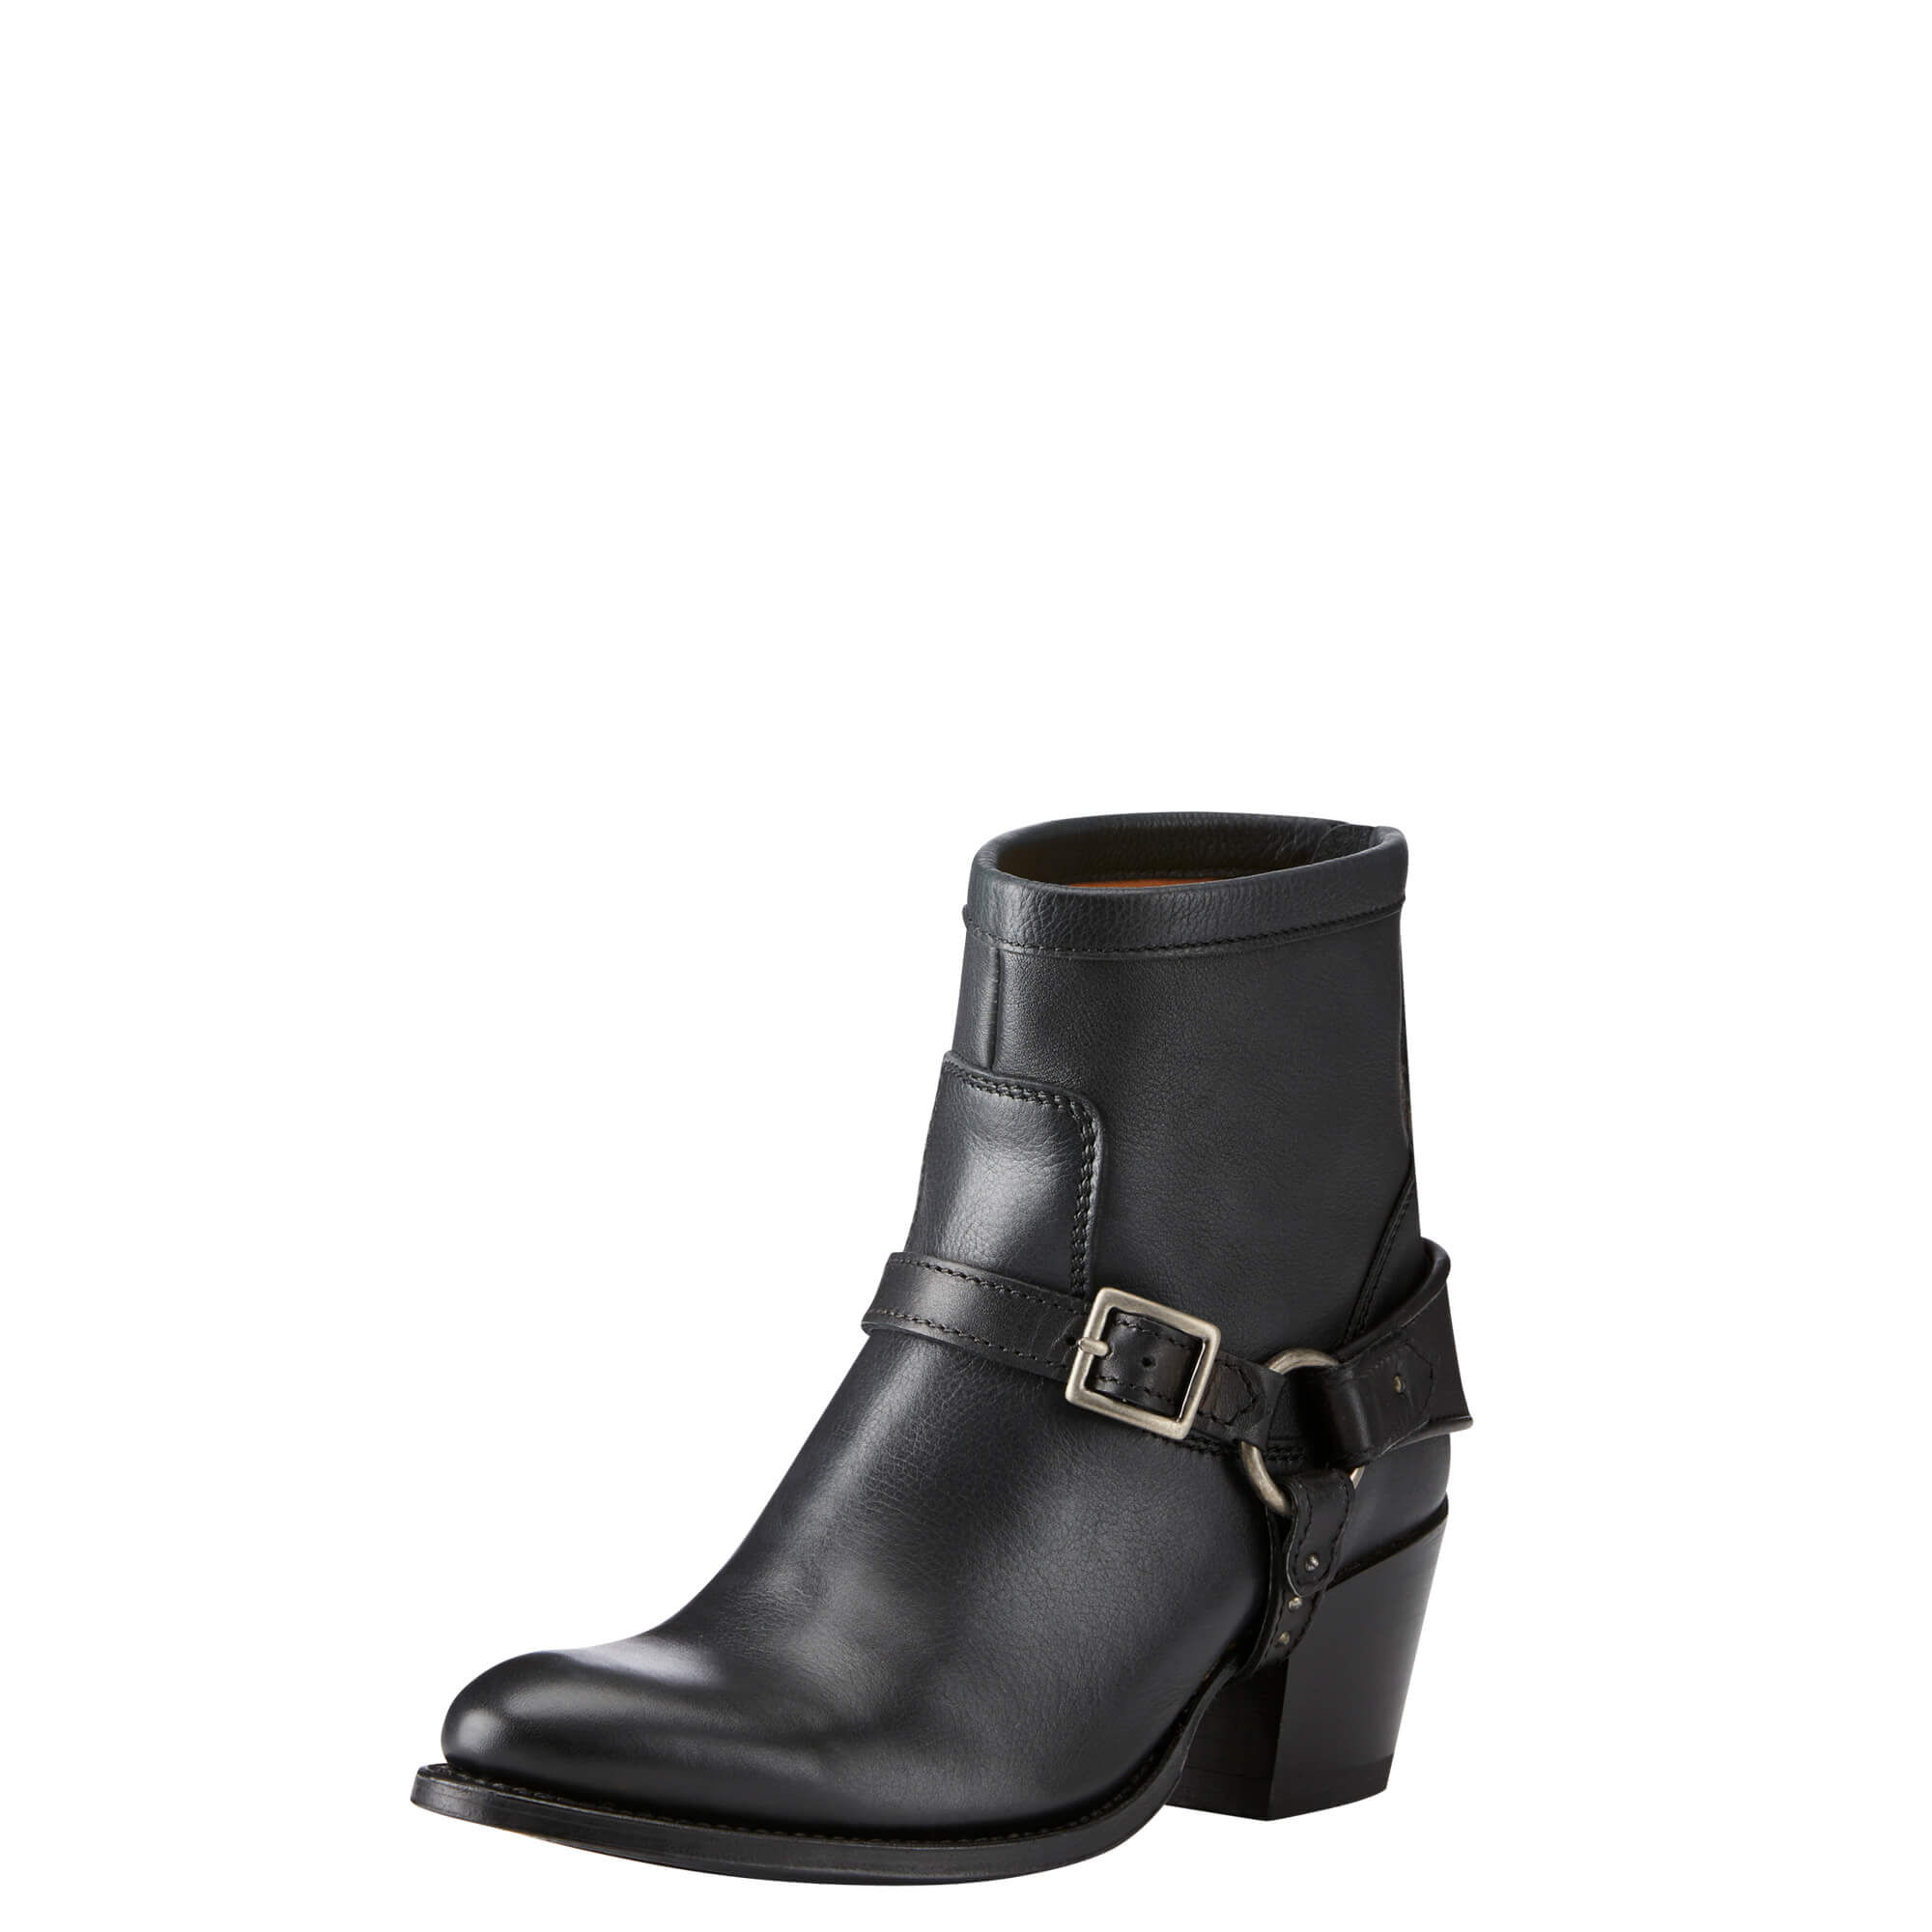 Women's Segovia Ankle Boots in Black Leather by Ariat Two24